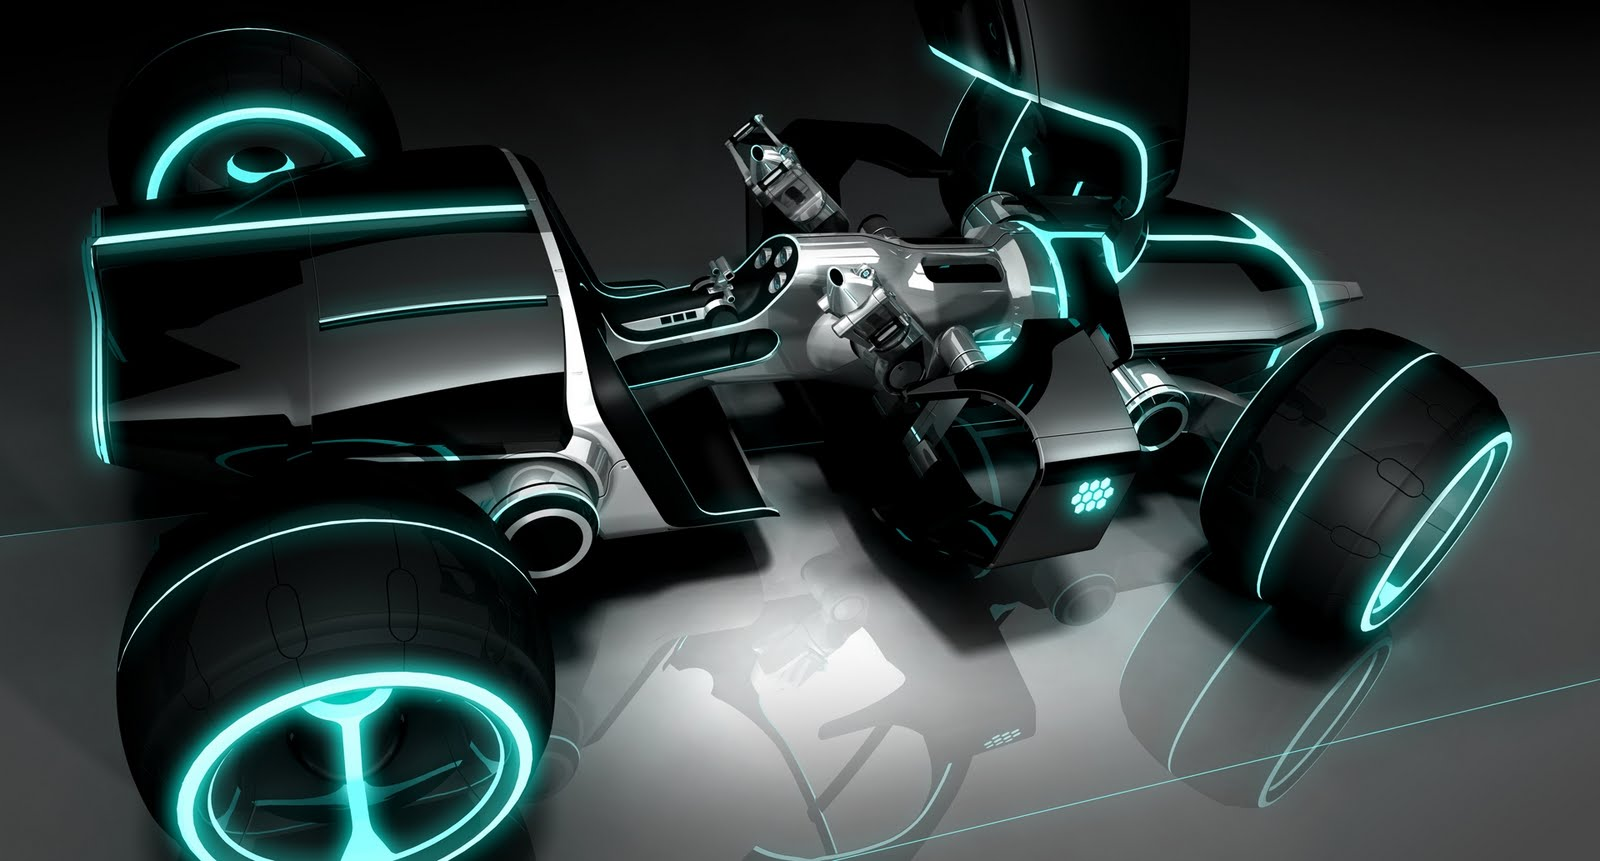 19 tron designs toys and accessories walyou